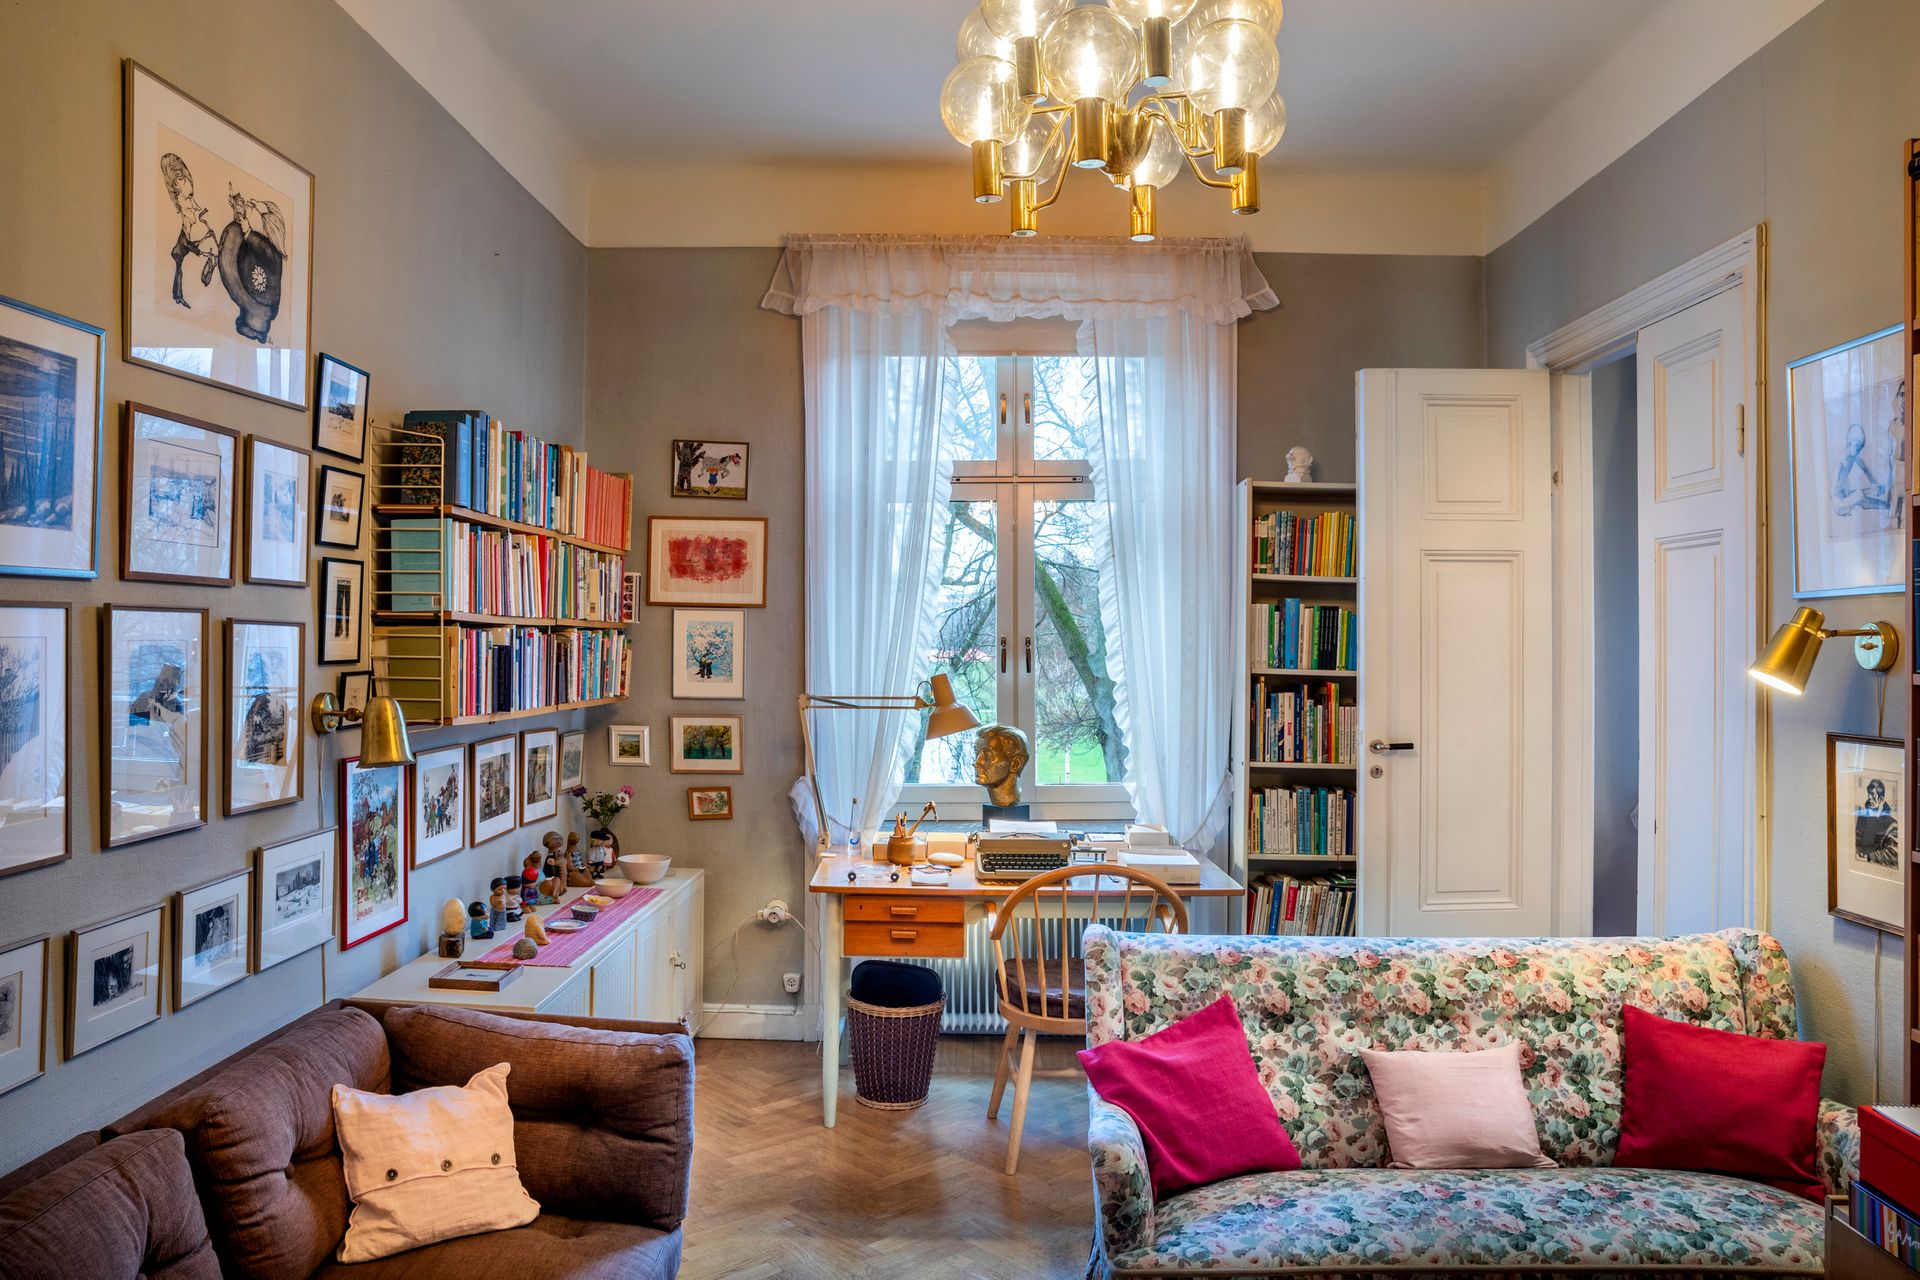 A cozy flat with bookshelf, posters, and a big window